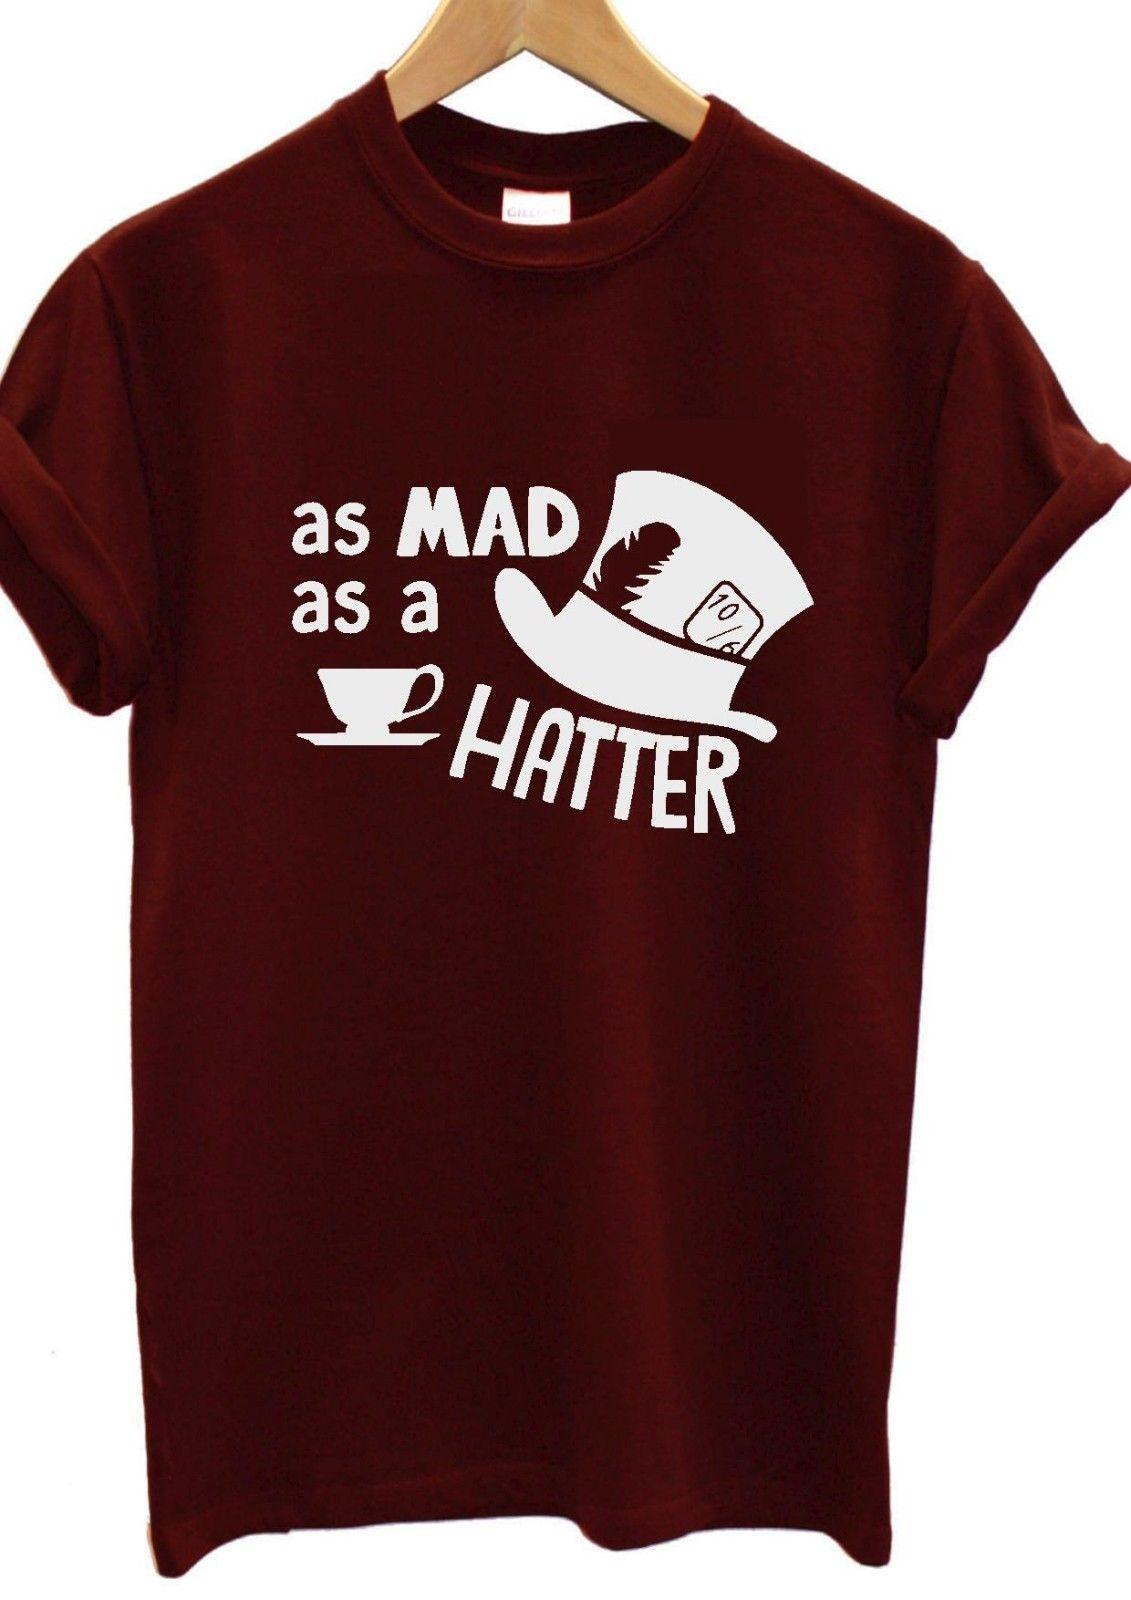 8841e895 Alice In Wonderland T Shirt As Mad As A Mad Hatter T Shirt Tee Kids,Adult S  Xxxl Funny Unisex Casual Tshirt Top Cloth T Shirt Shirt Site From  Teeslocker, ...